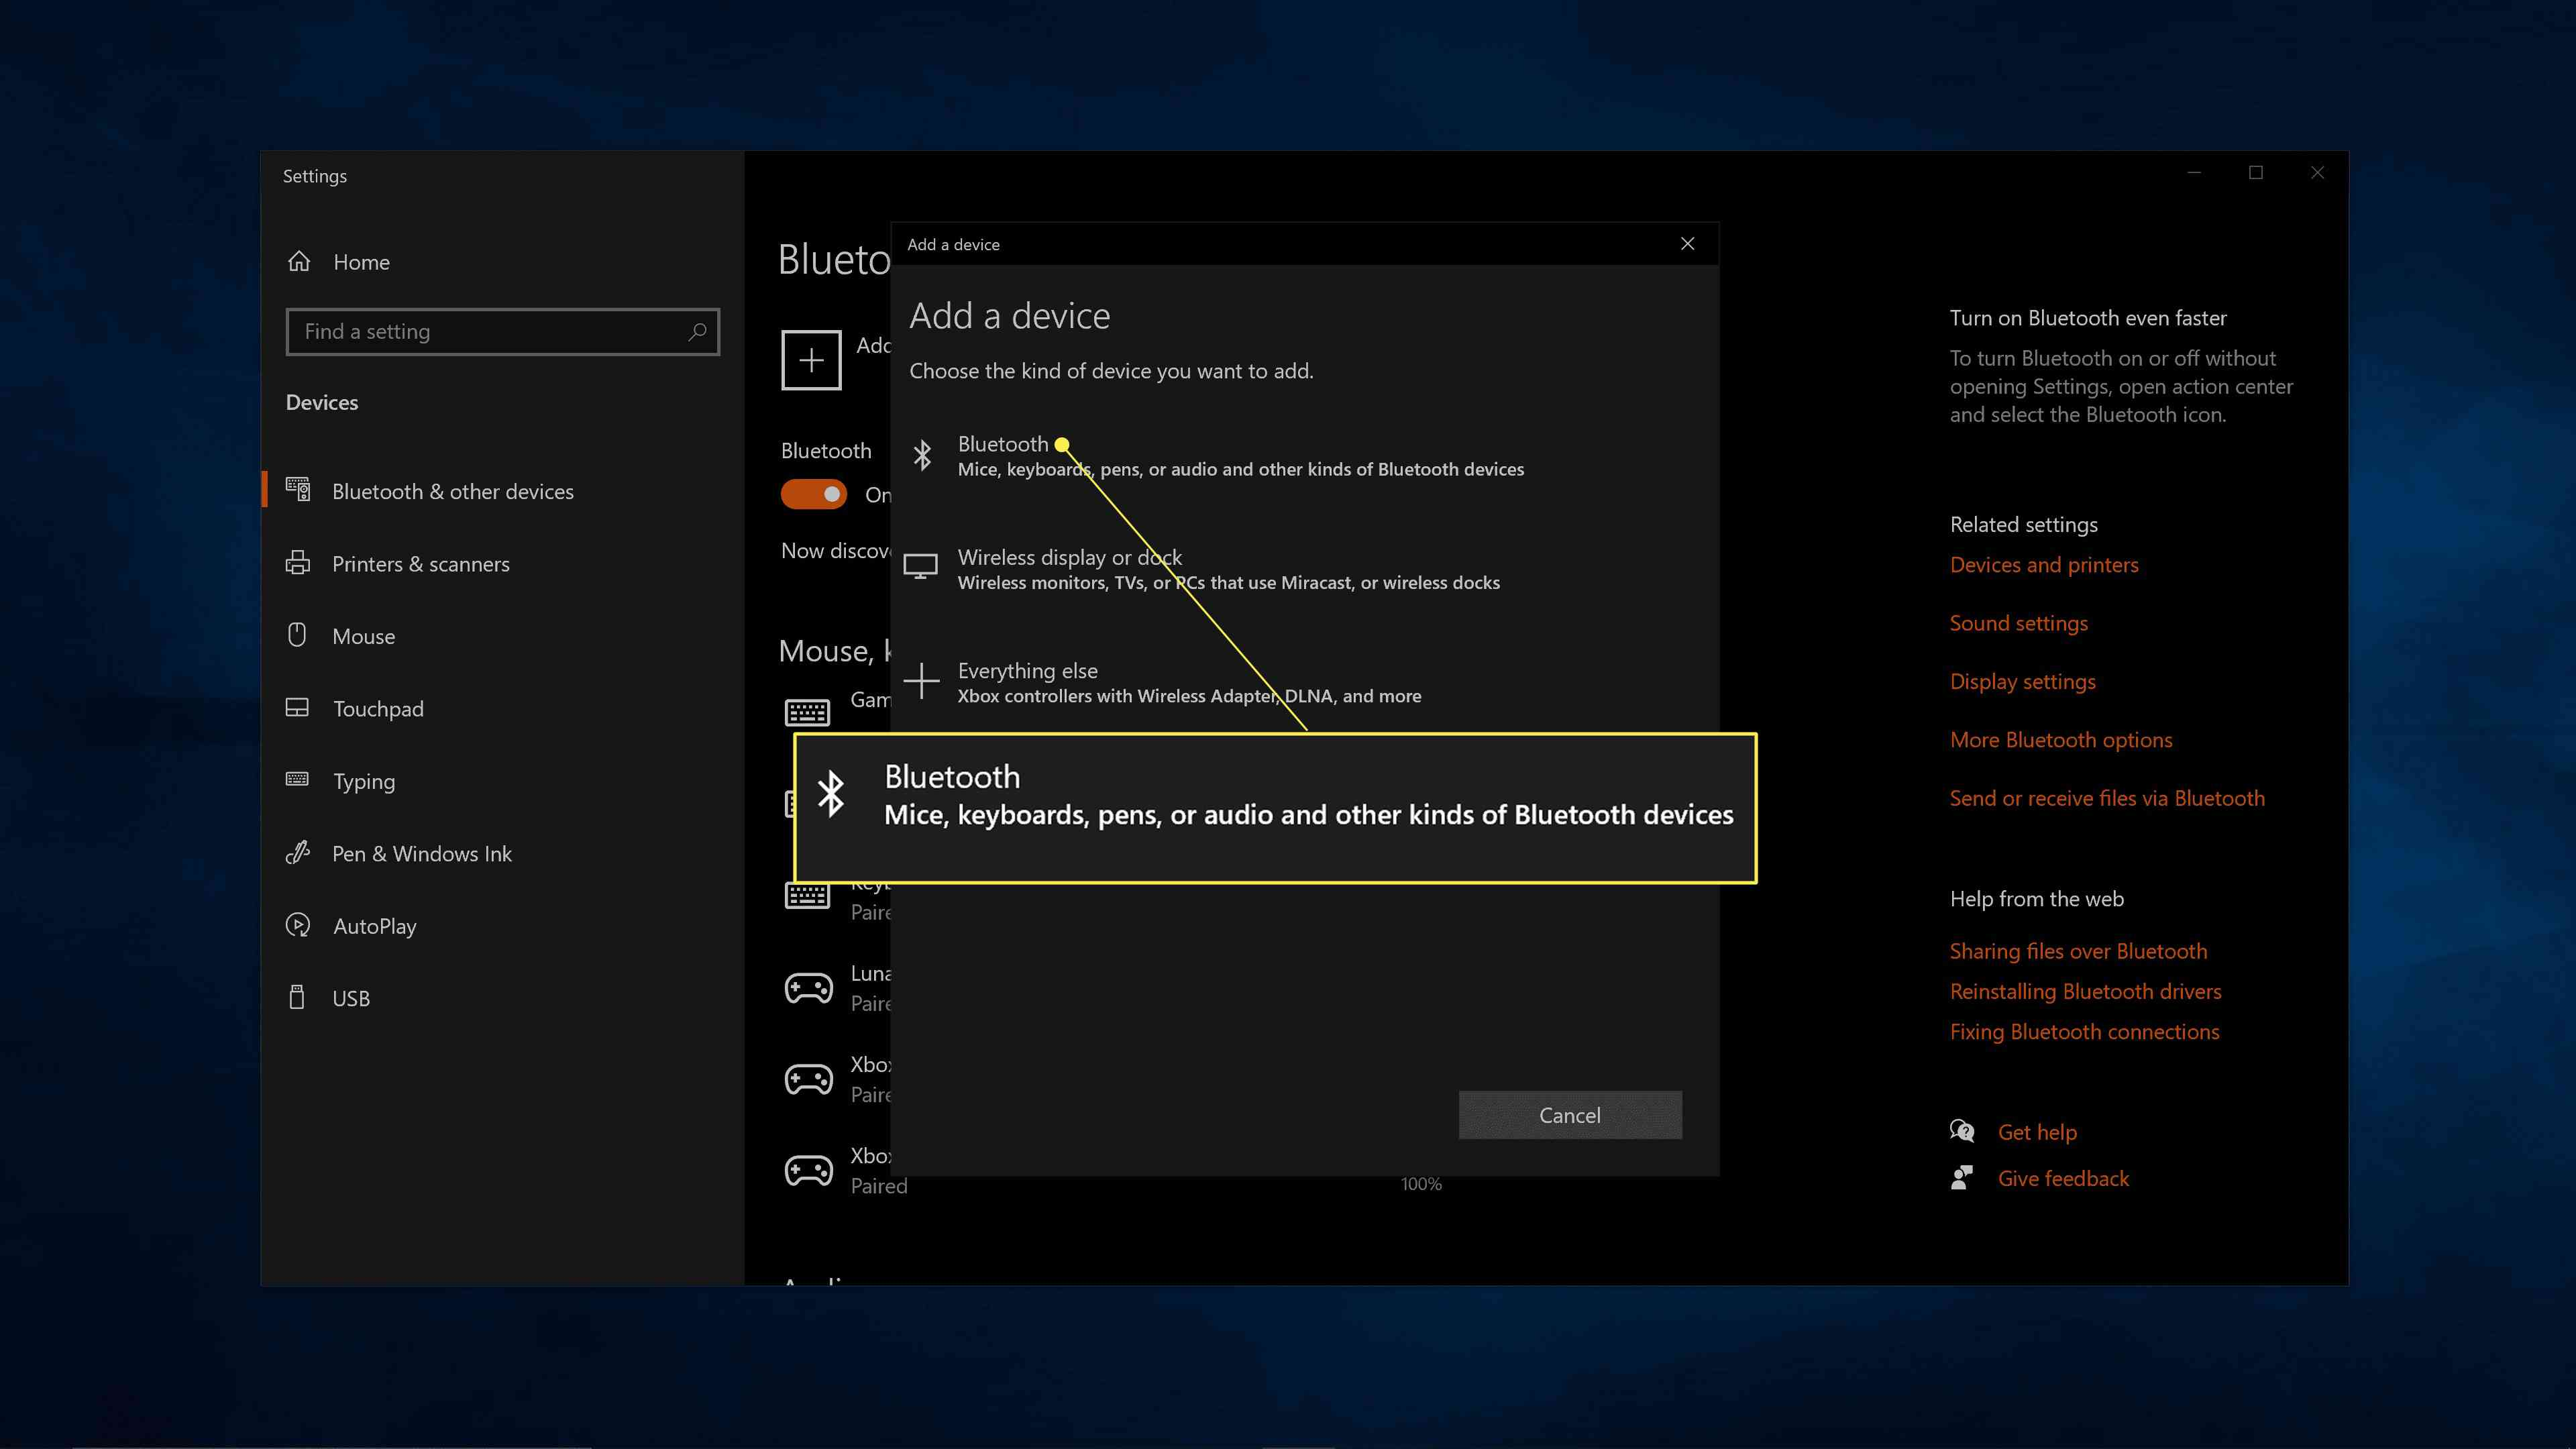 Bluetooth highlighted in the add a device menu in Windows 10.